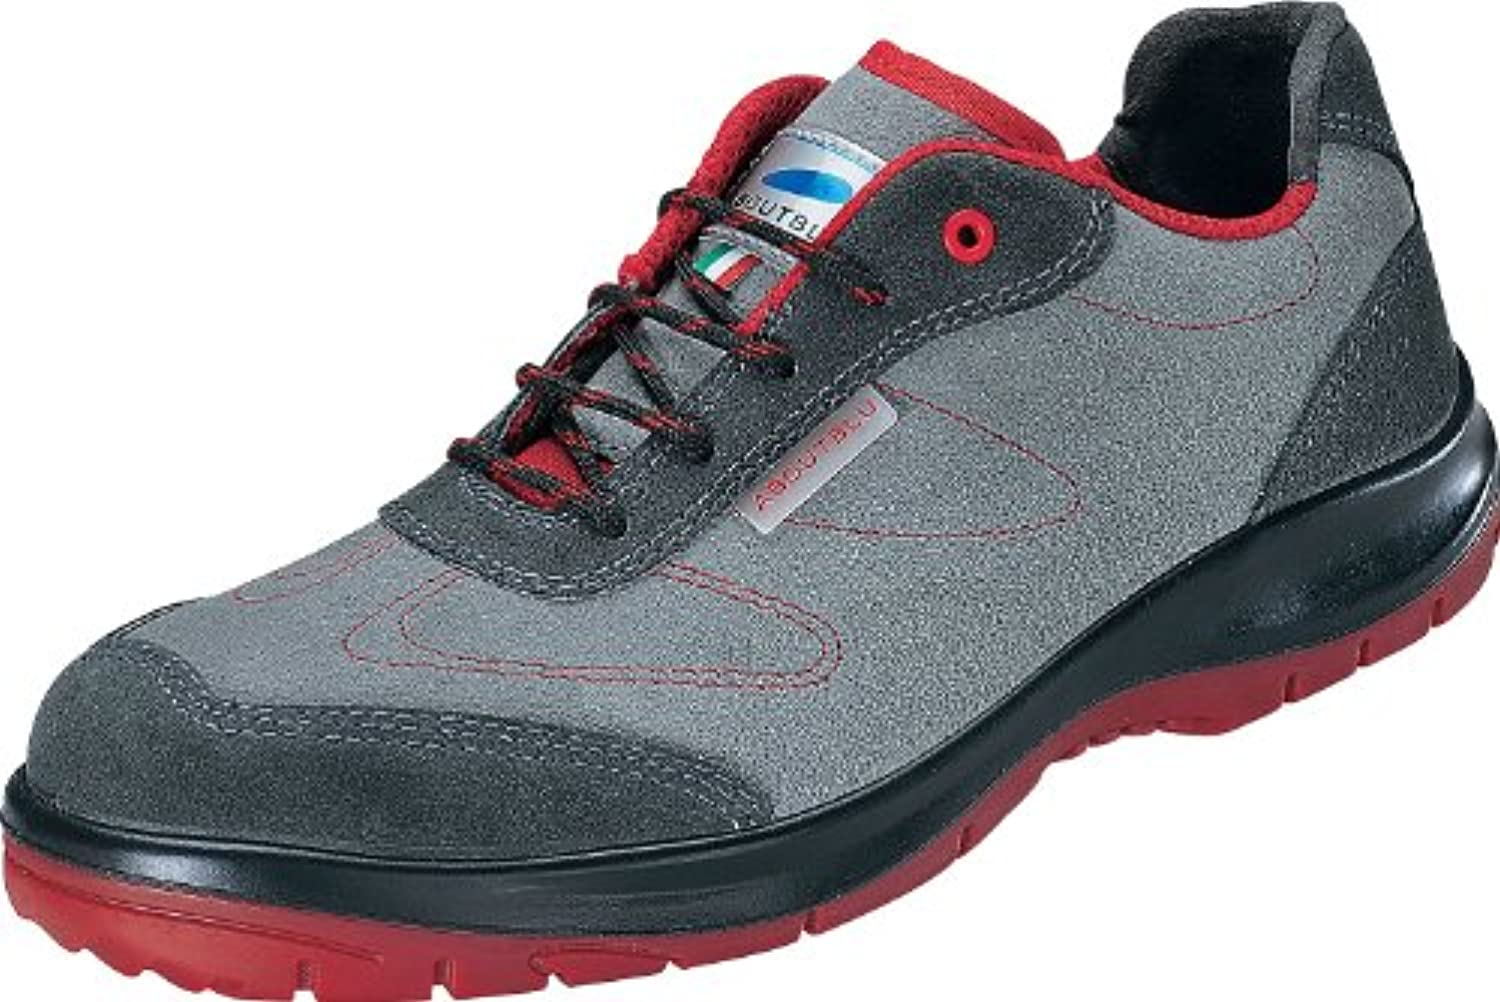 Aboutblu 1930102la 43 Sparrow Low Grey-Red S3 Chaussures Grey/RedB00BP6I1DQParent de Travail, Taille 43, Grey/RedB00BP6I1DQParent Chaussures 592fb4